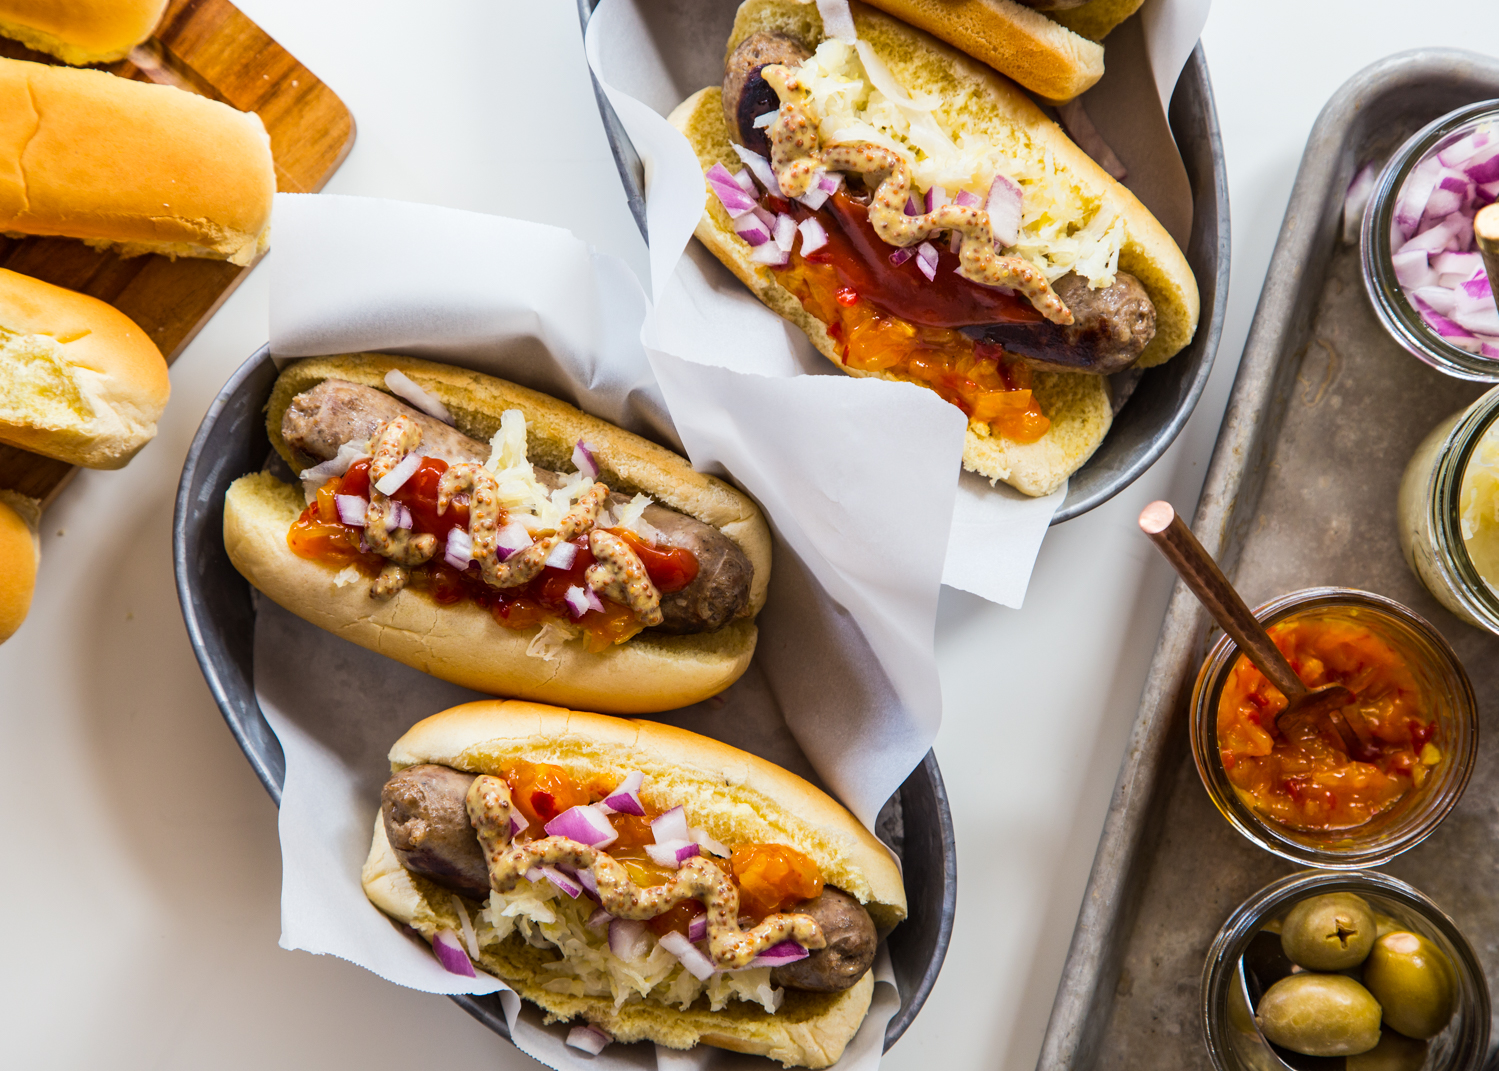 Your guests will love a deluxe Bratwurst and Hot Dog Bar for the big game!